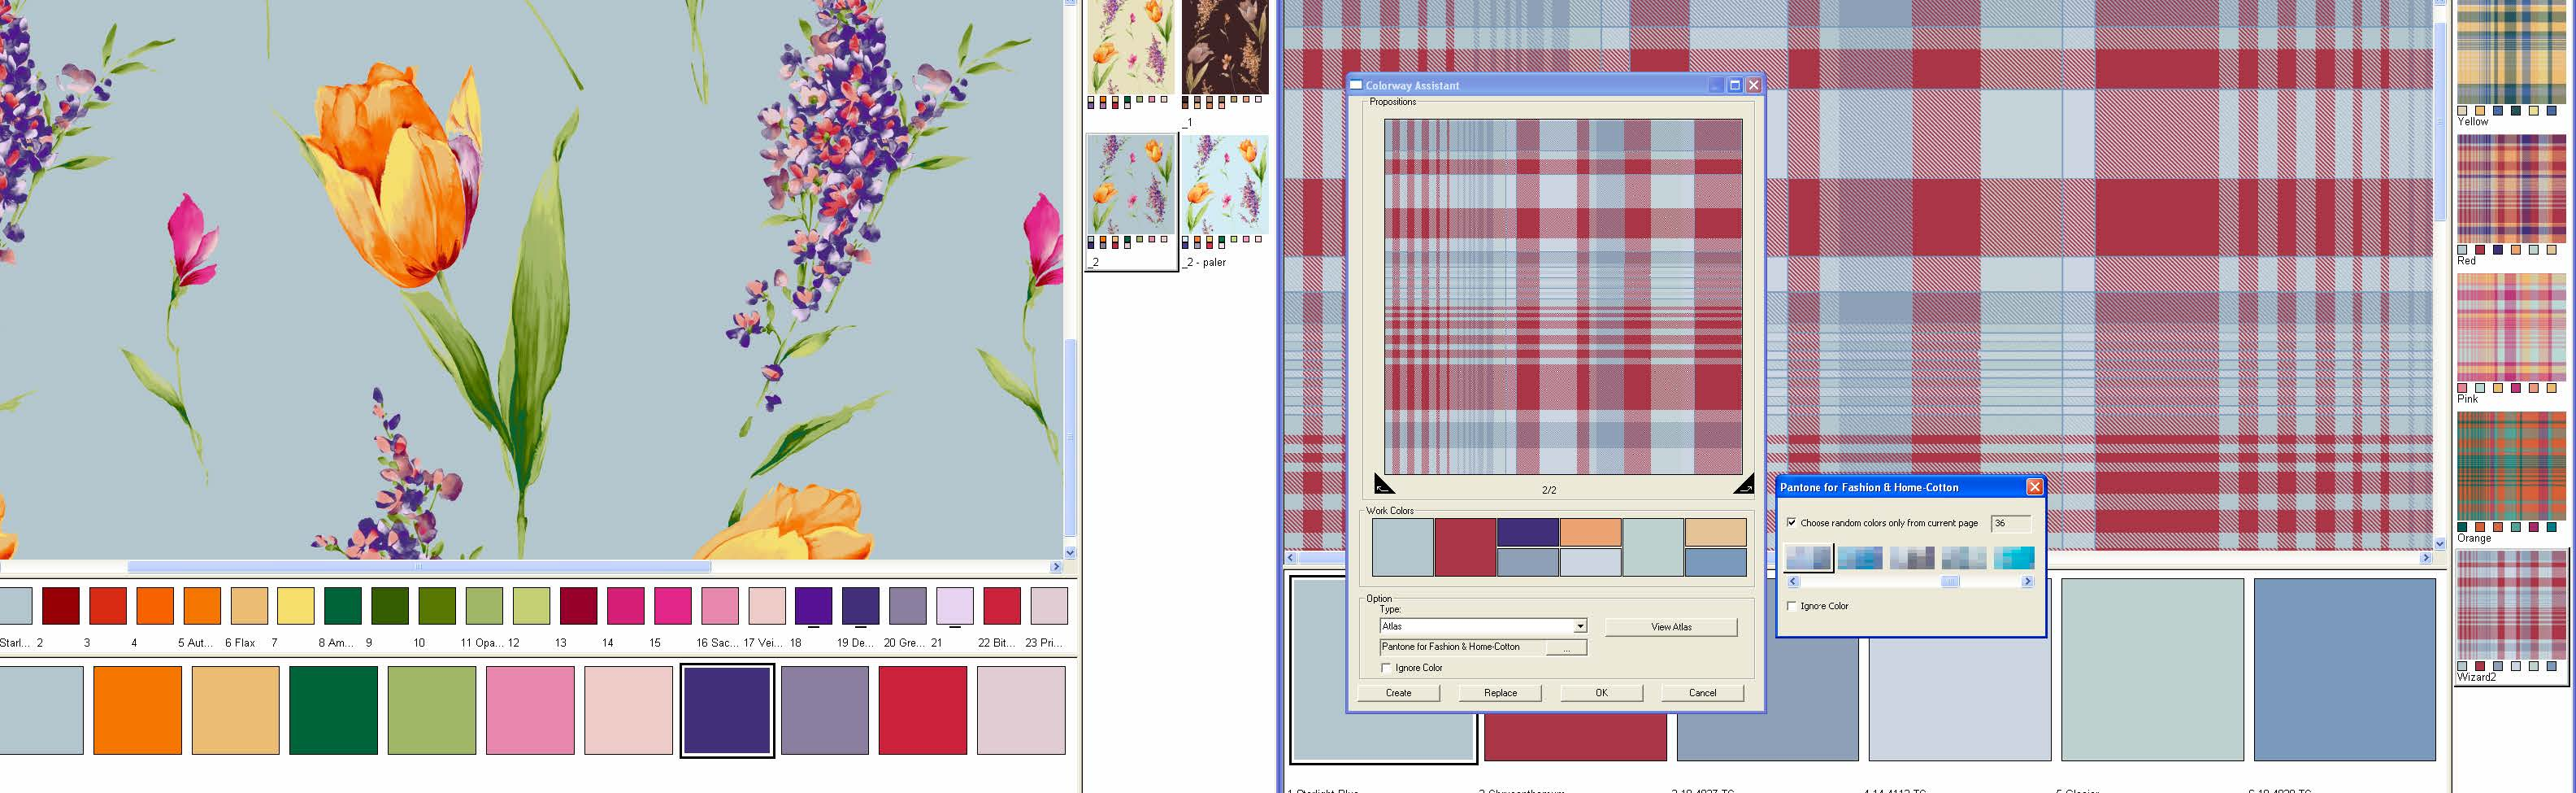 screen shot showing how to recolor prints knits and weaves at the same time with automatic color rotation view